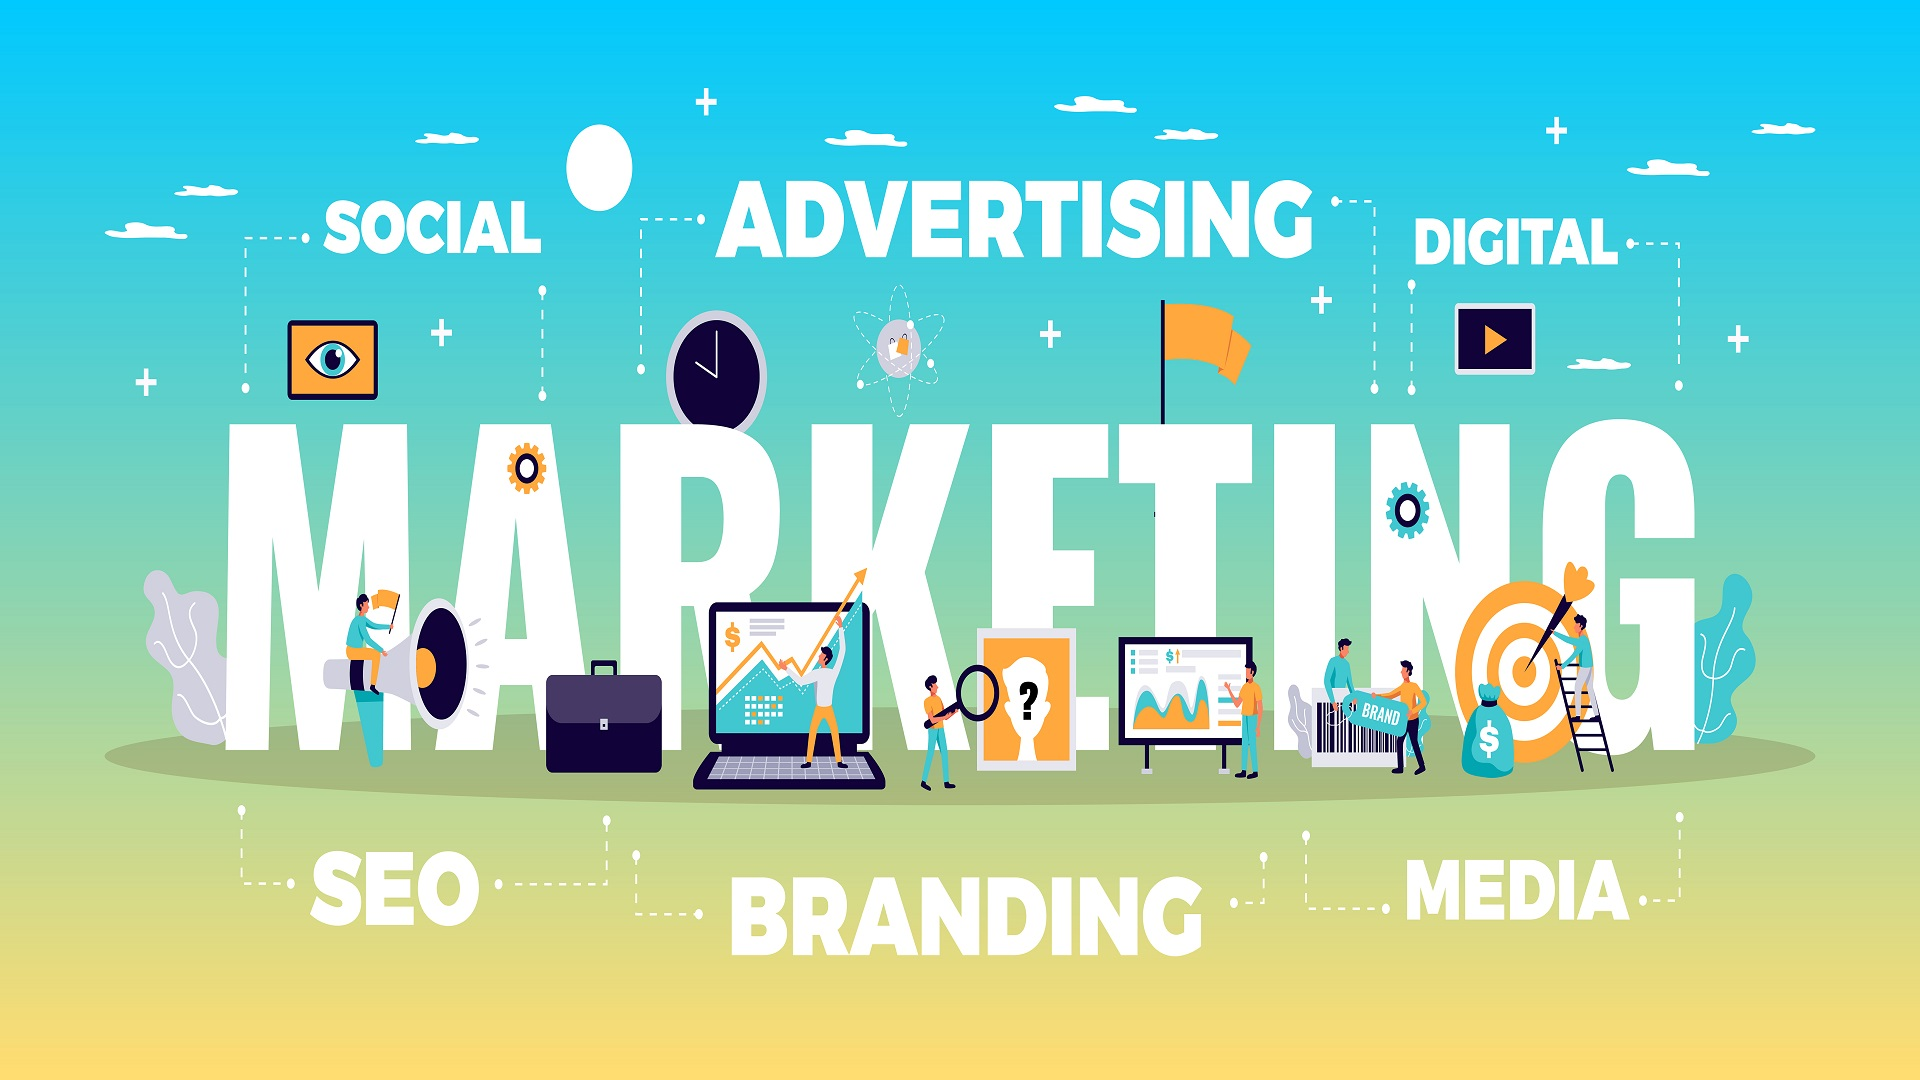 image to illustrate the concept of social media marketing